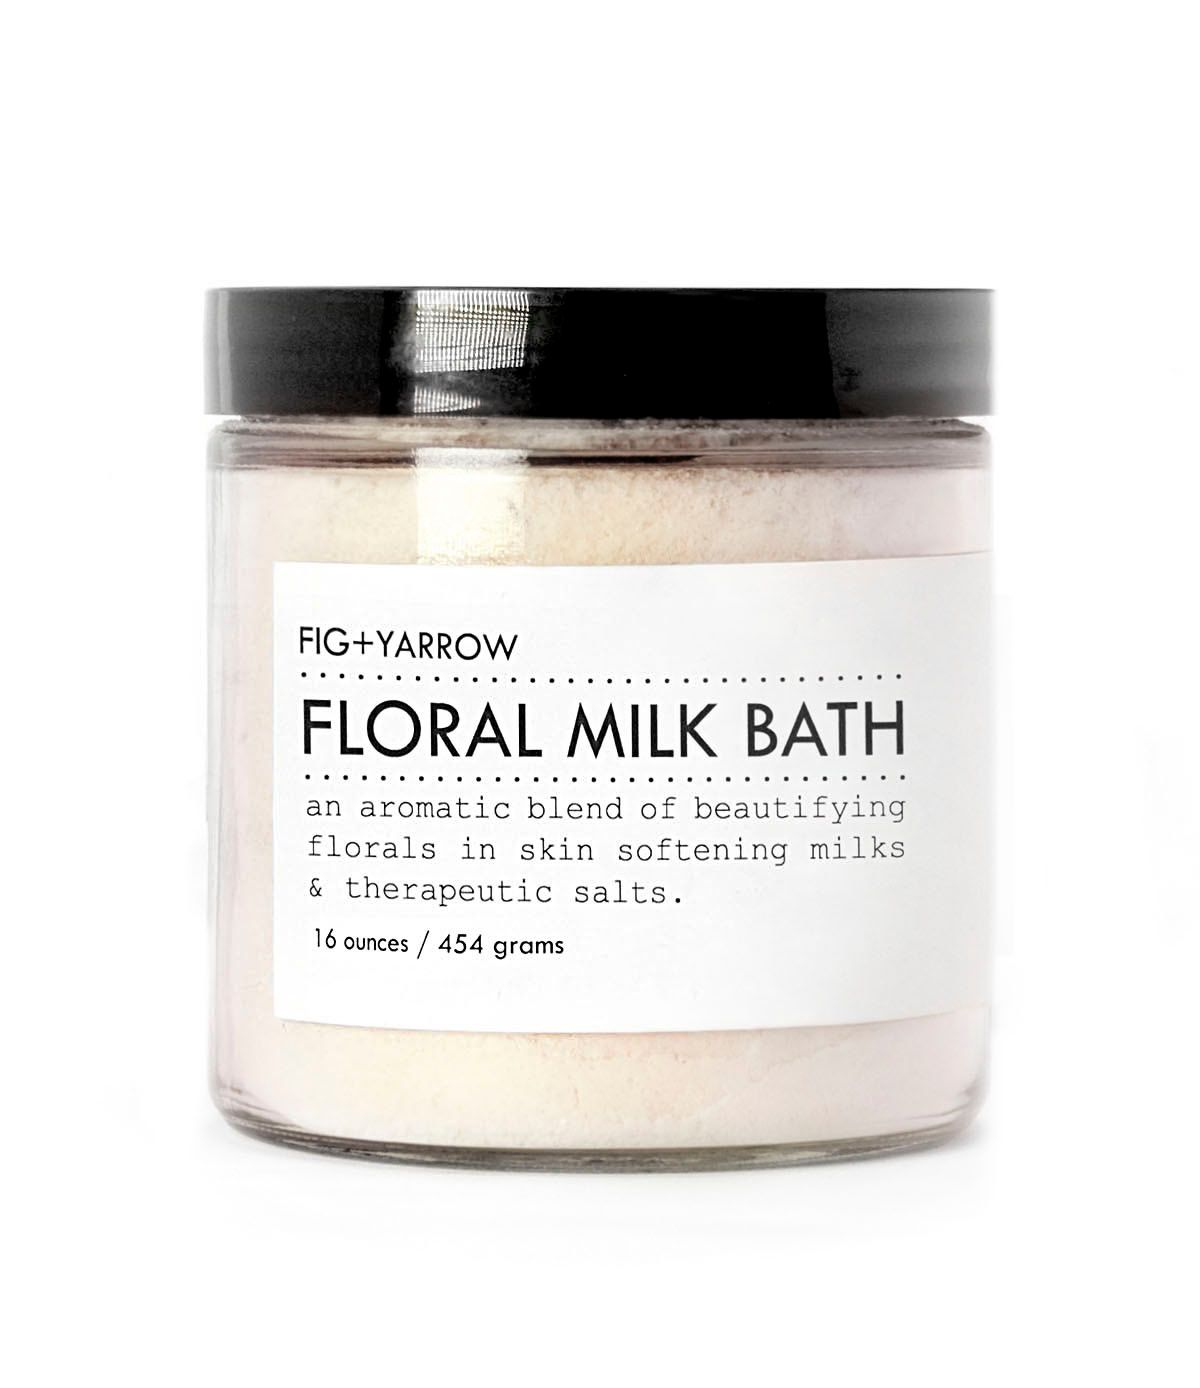 FLORAL MILK BATH - large glass jar - skin-softening - relaxing - beautifying - aromatherapeutic. $32.00, via Etsy.